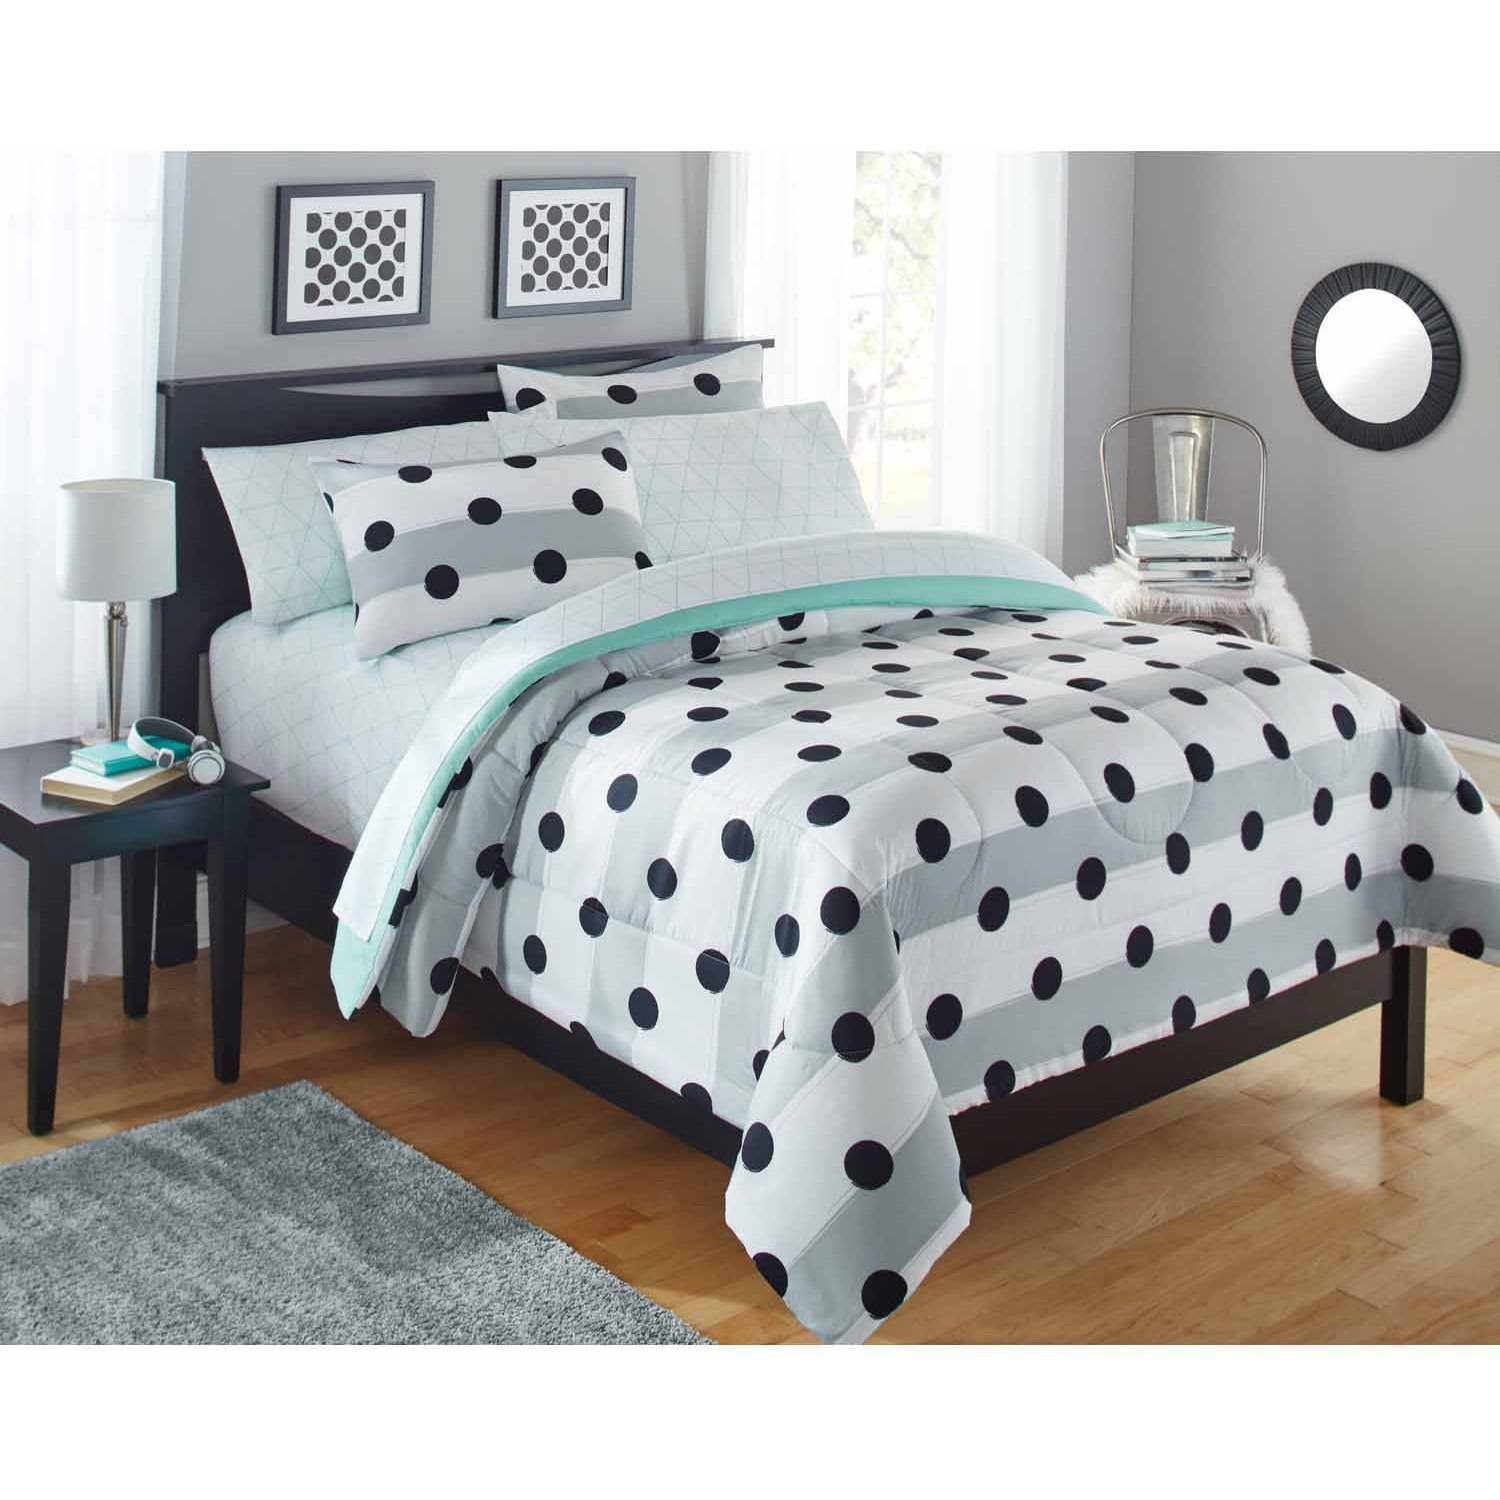 home set comforter com lux lush kitchen queen decor grey dp piece amazon gray sets